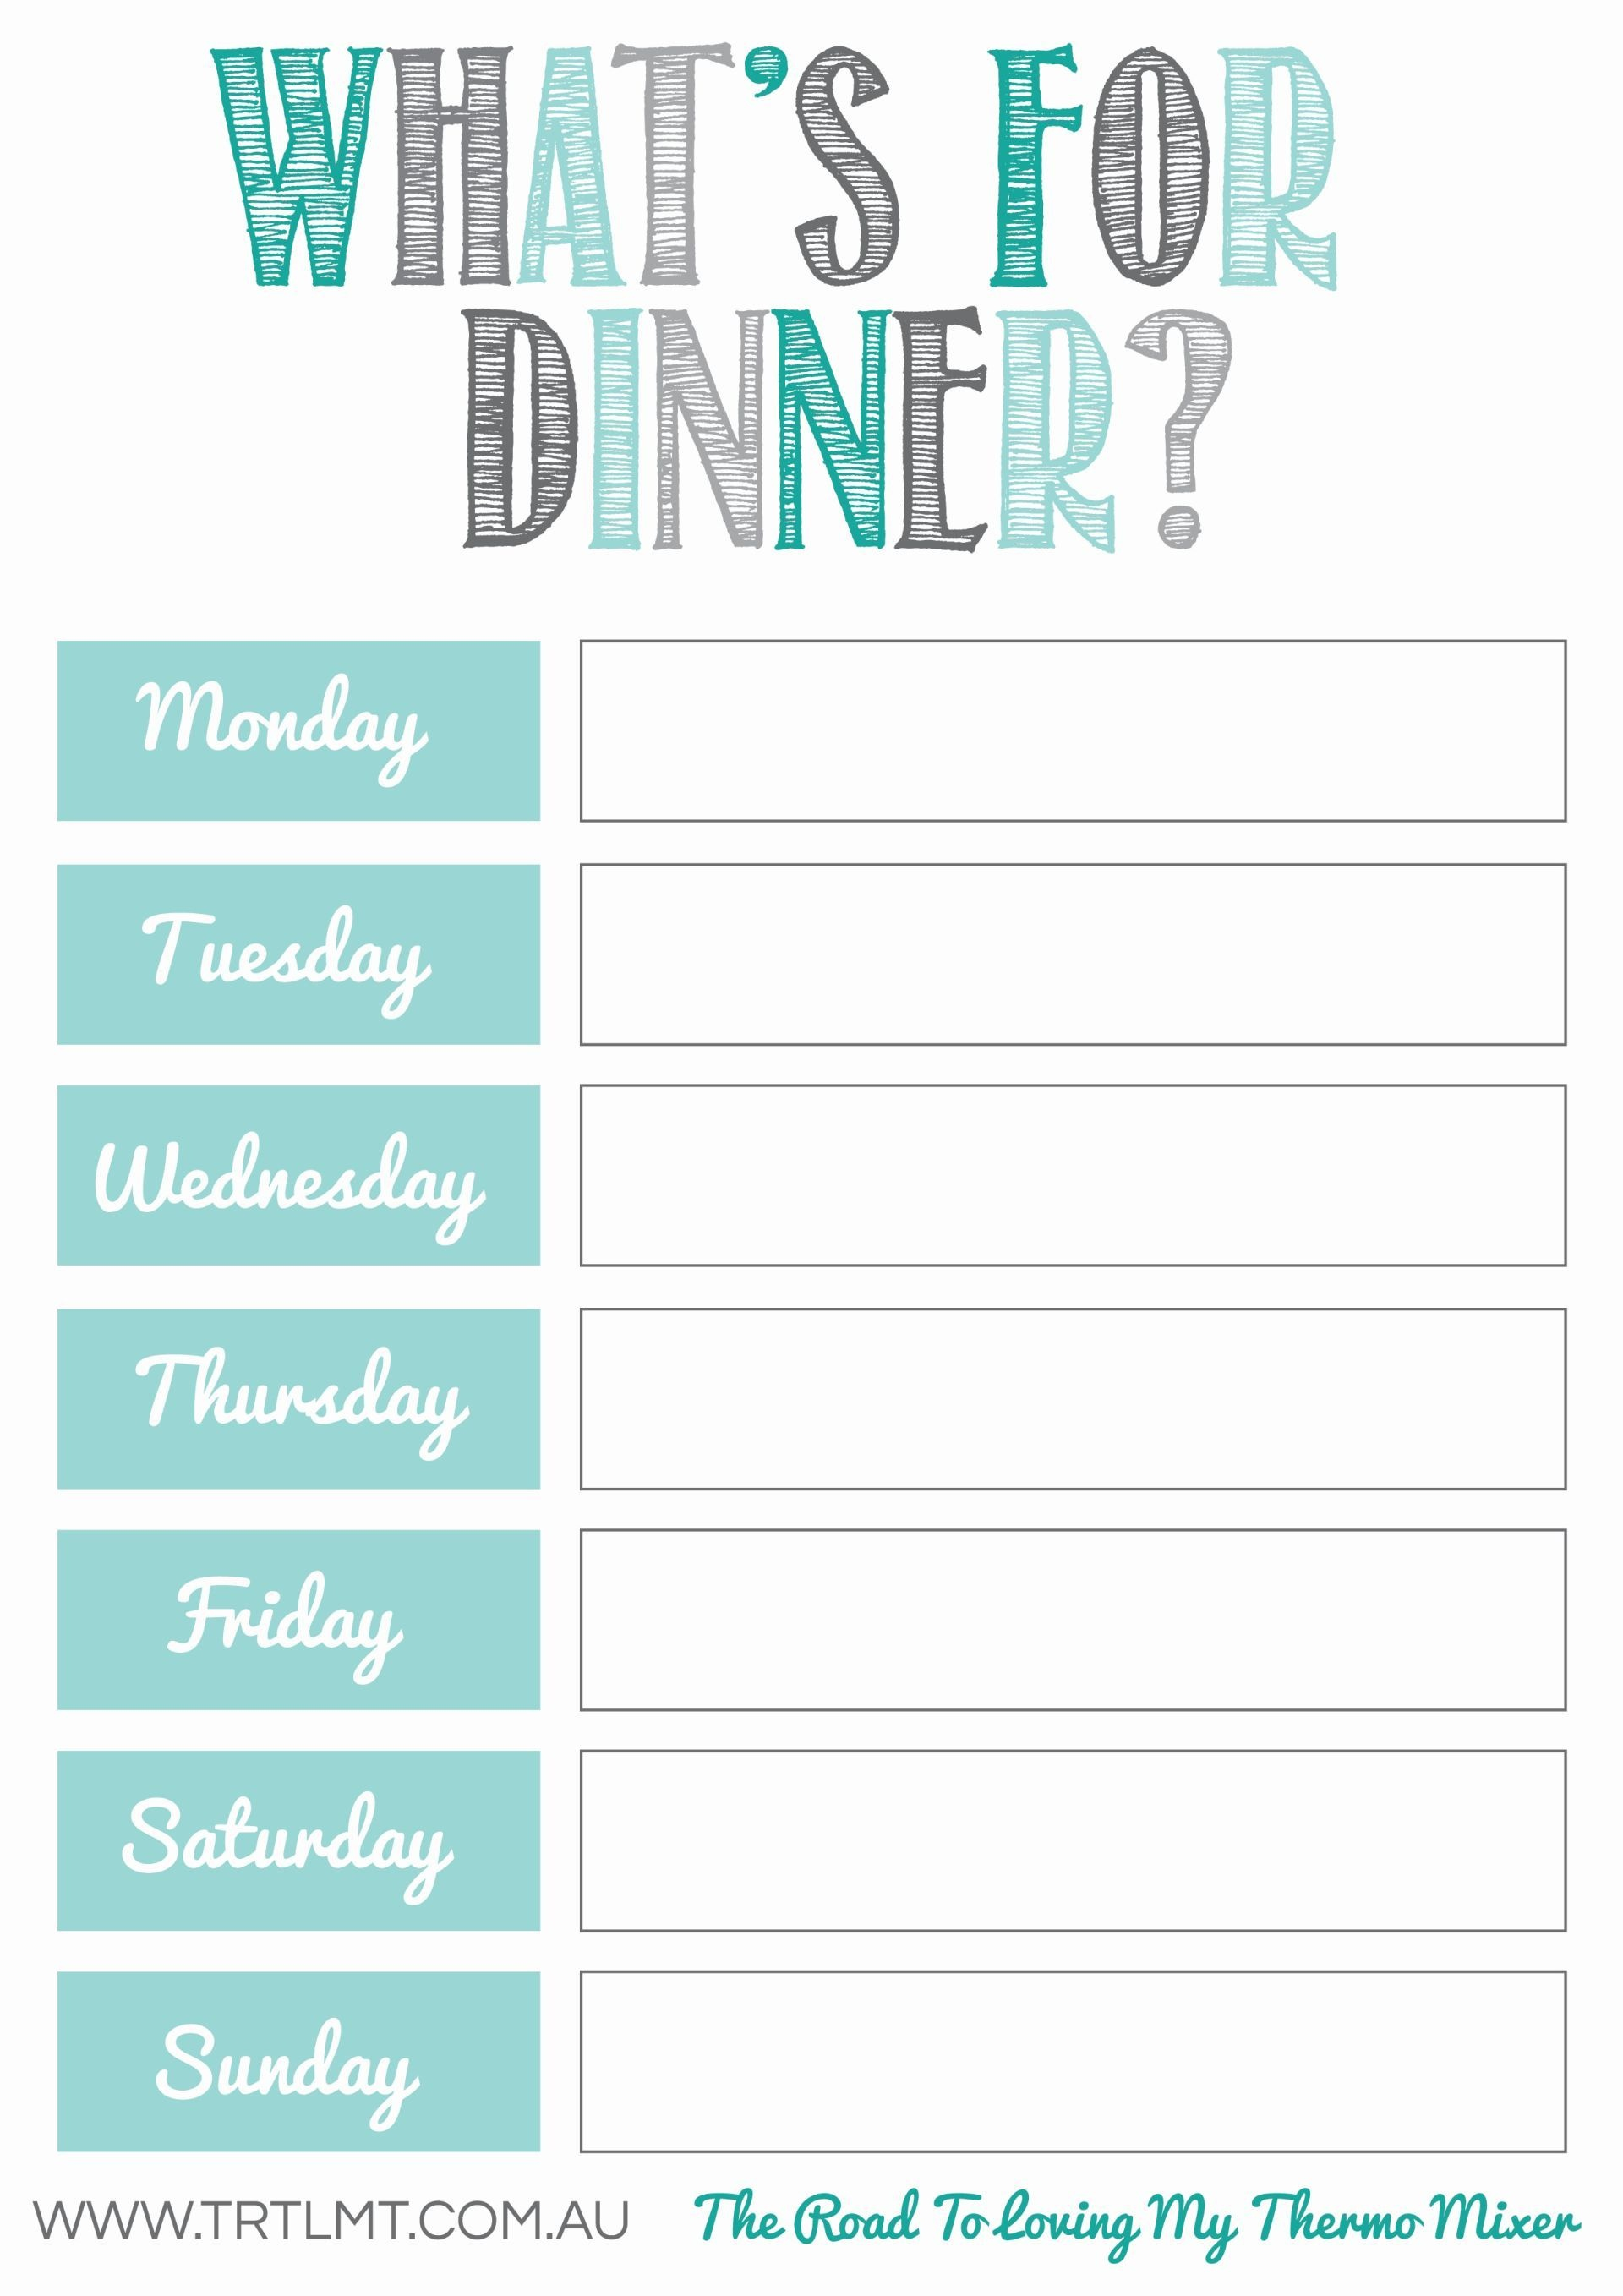 Clip Recipe Cards To It With Magnetic Clips And Hang On Fridge - Free Printable Menu